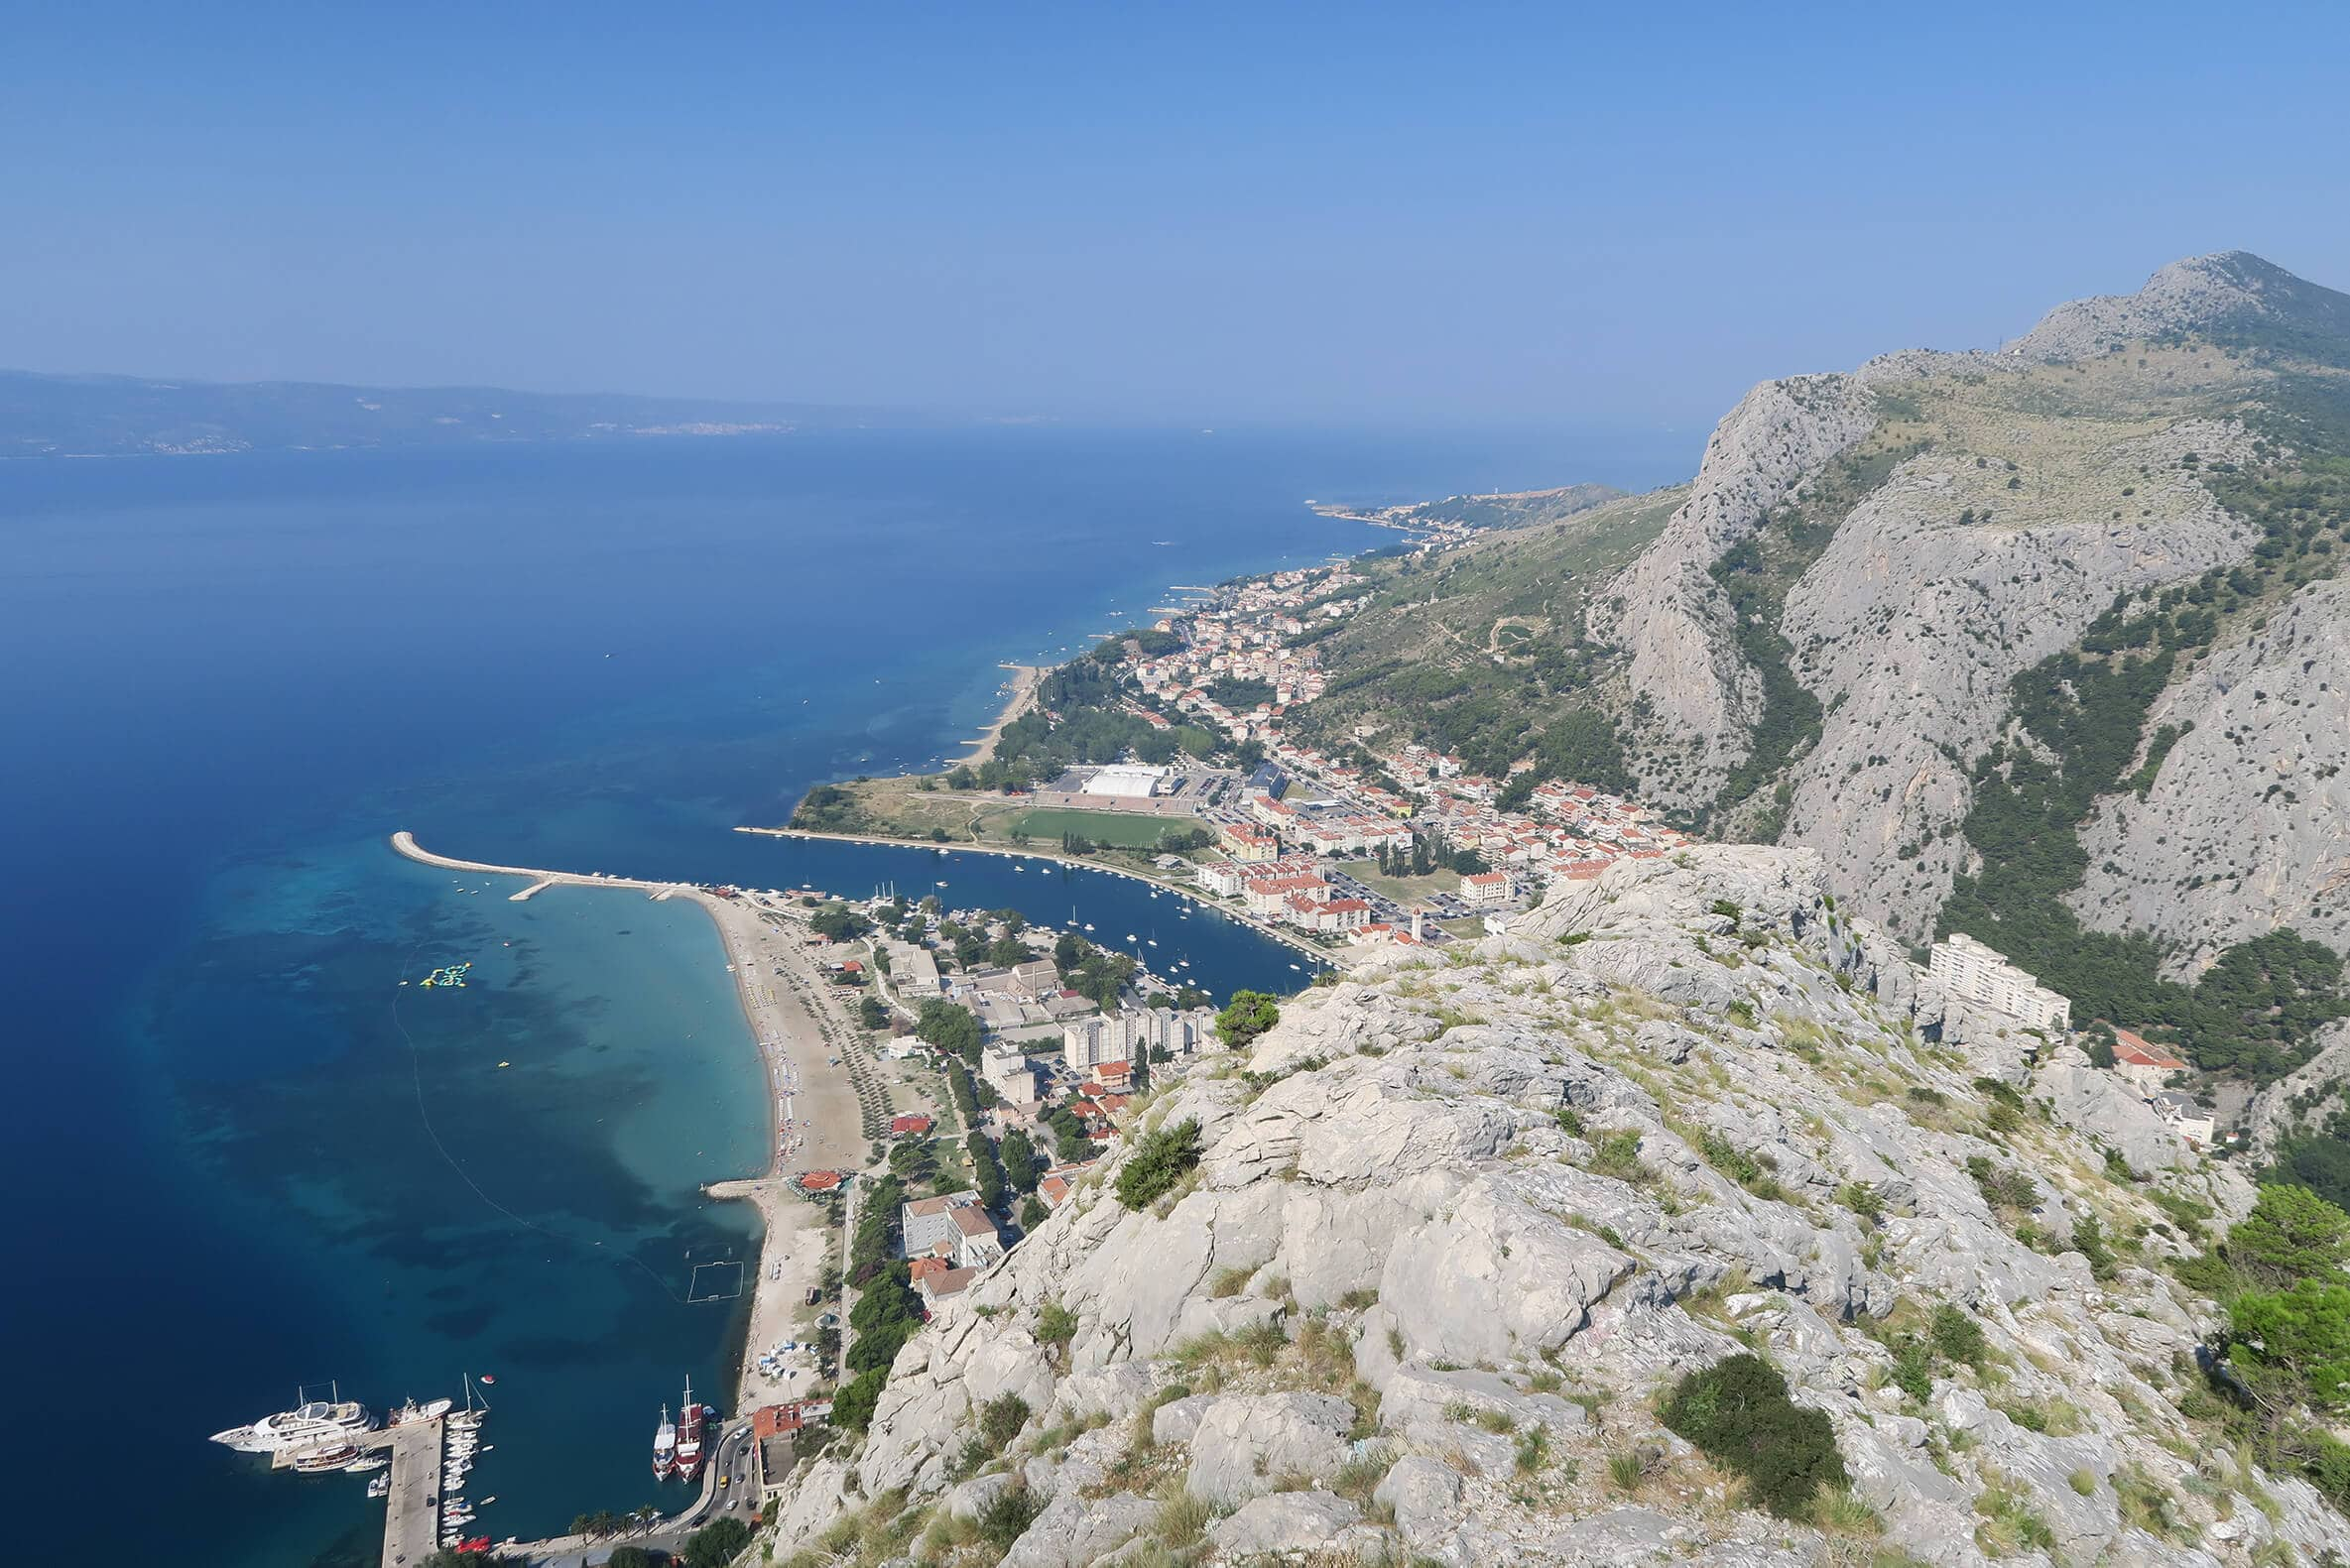 Omis, Croatia - One of the most underrated cities in the world + why you should add it to your bucket list low!